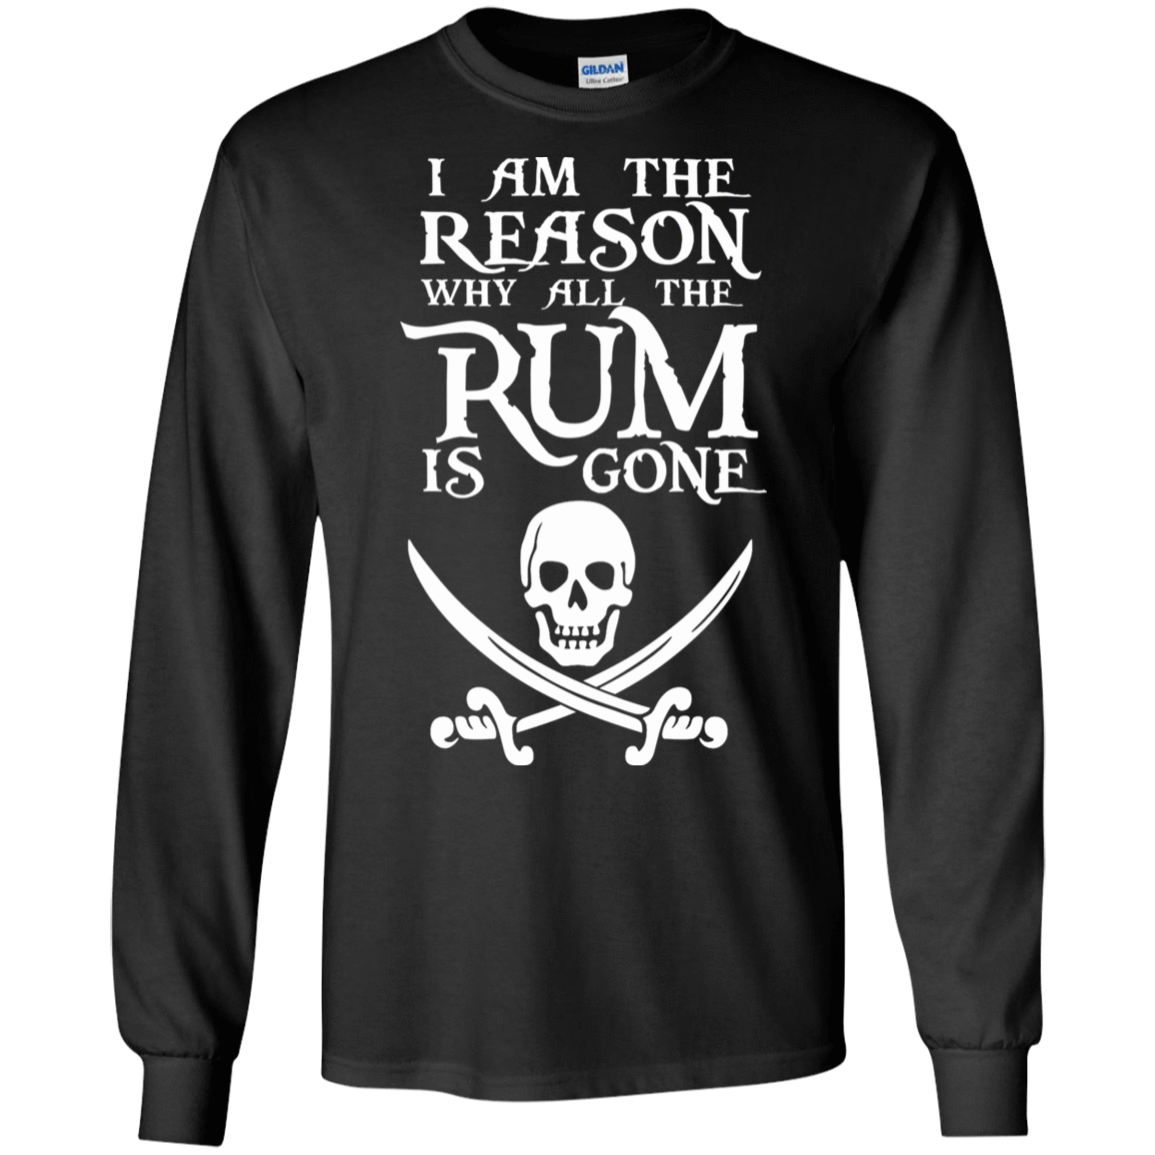 I Am The Reason Why All The Rum Is Gone 30-186-73425464-333 - Tee Ript